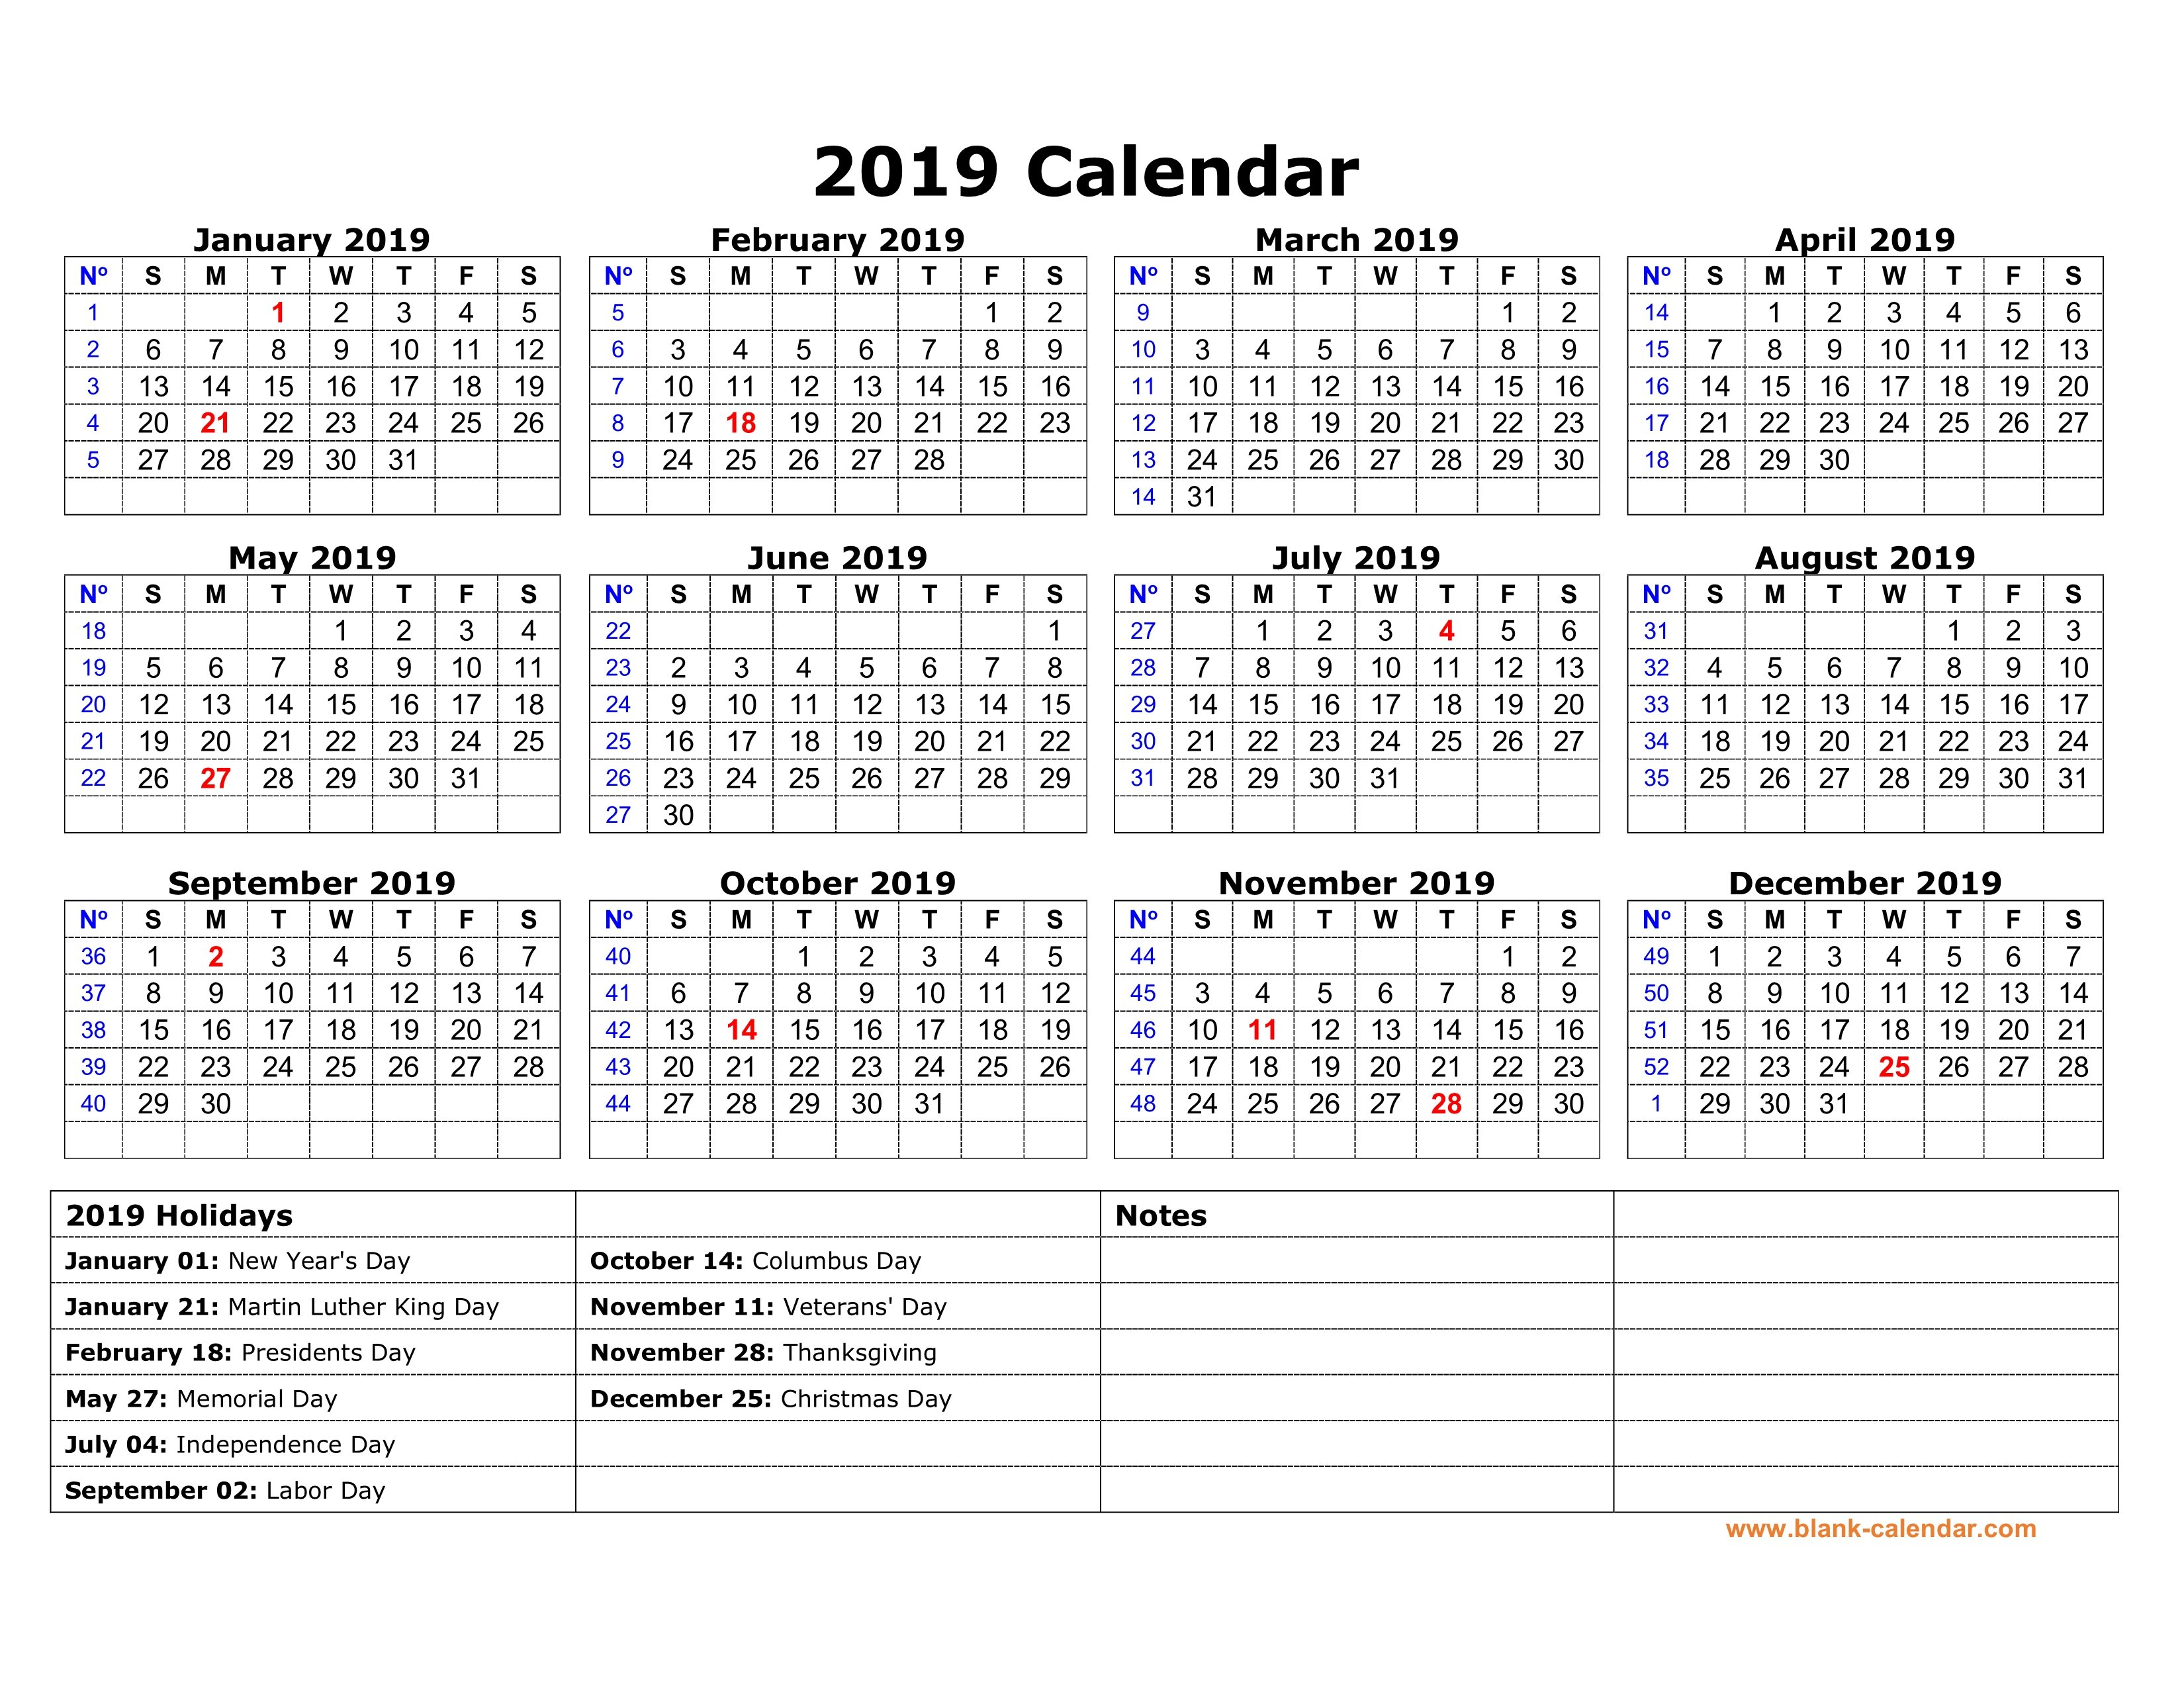 Free Download Printable Calendar 2019 With Us Federal Holidays, One April 7 2019 Calendar